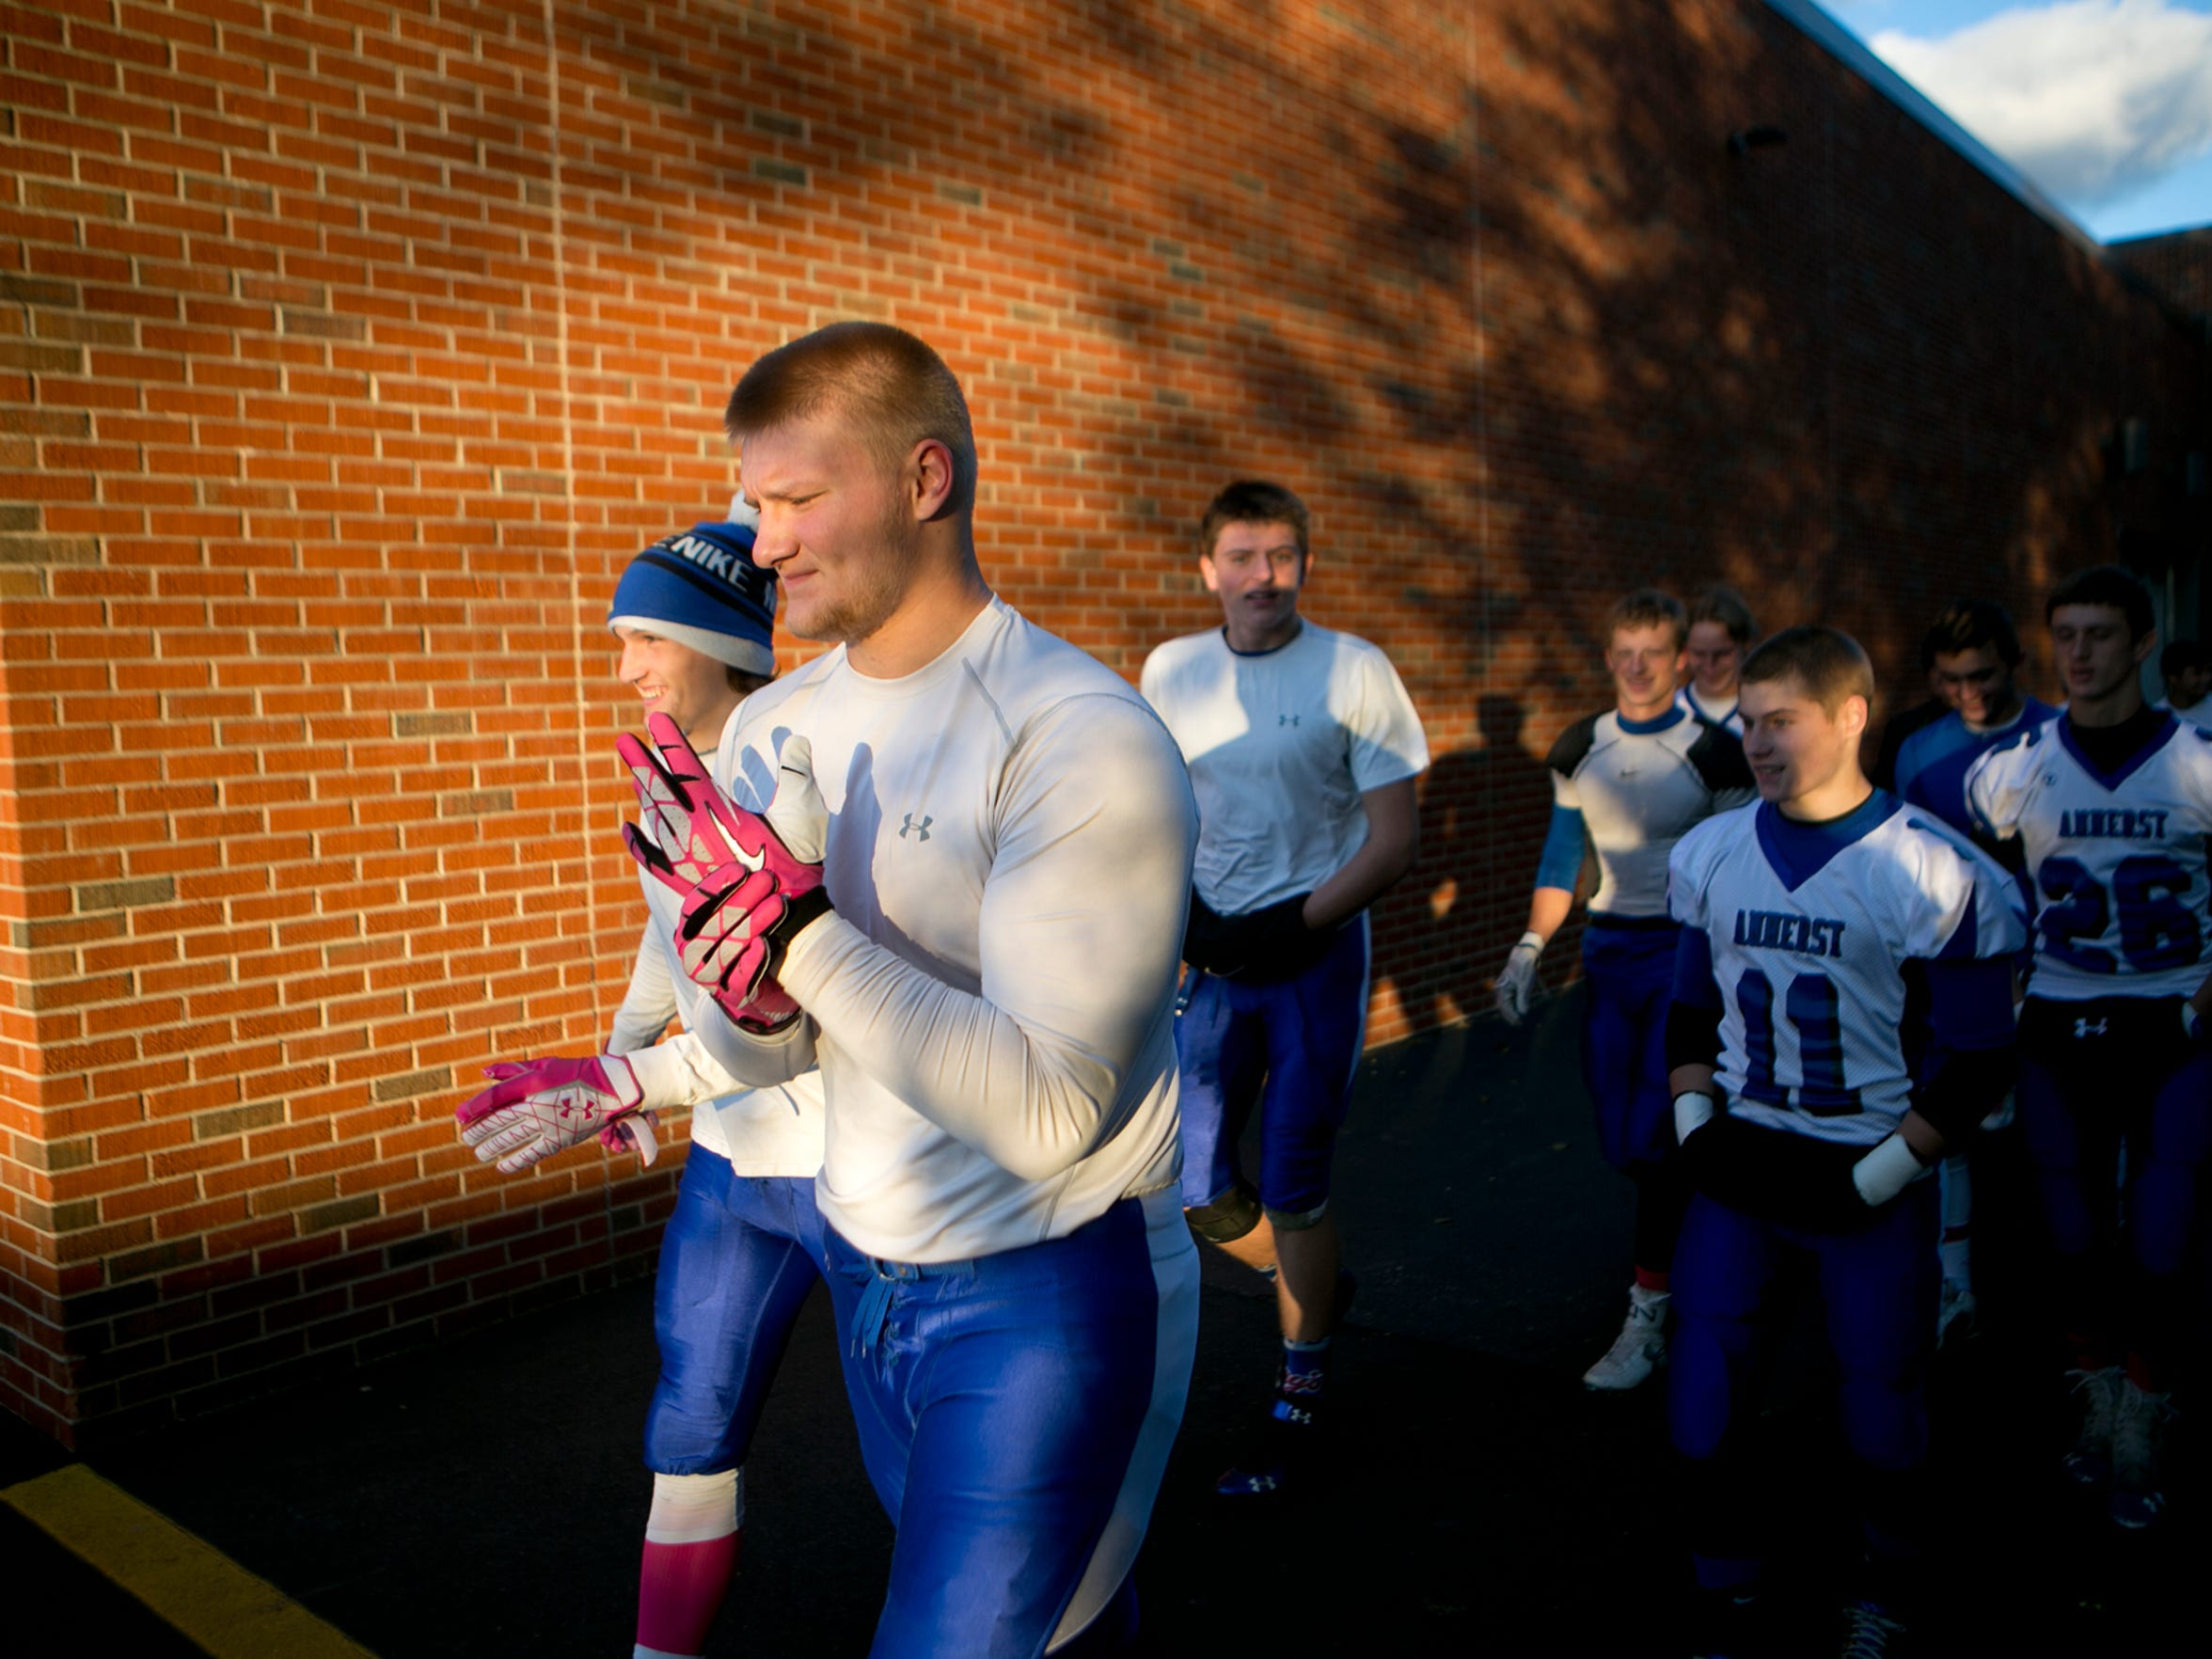 Seniors Garrett Groshek, left, and Tyler Biadasz, right, lead the team as they take to the practice field for warm-ups before playing Wittenberg-Birnamwood in the regular season finale, Friday, Oct. 16, 2015.